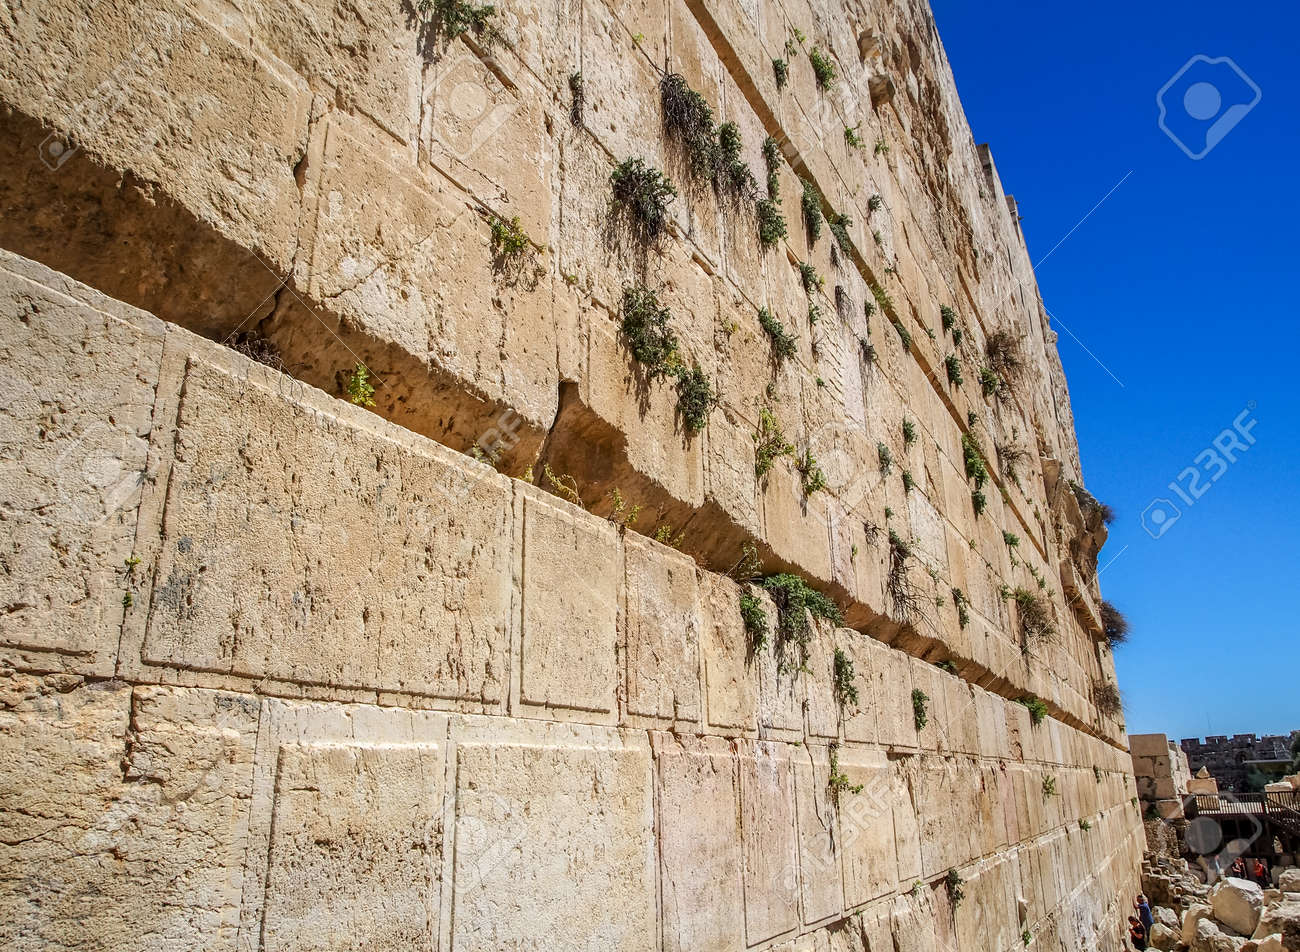 The Western Wall of the temple close-up, Temple Mount in Old